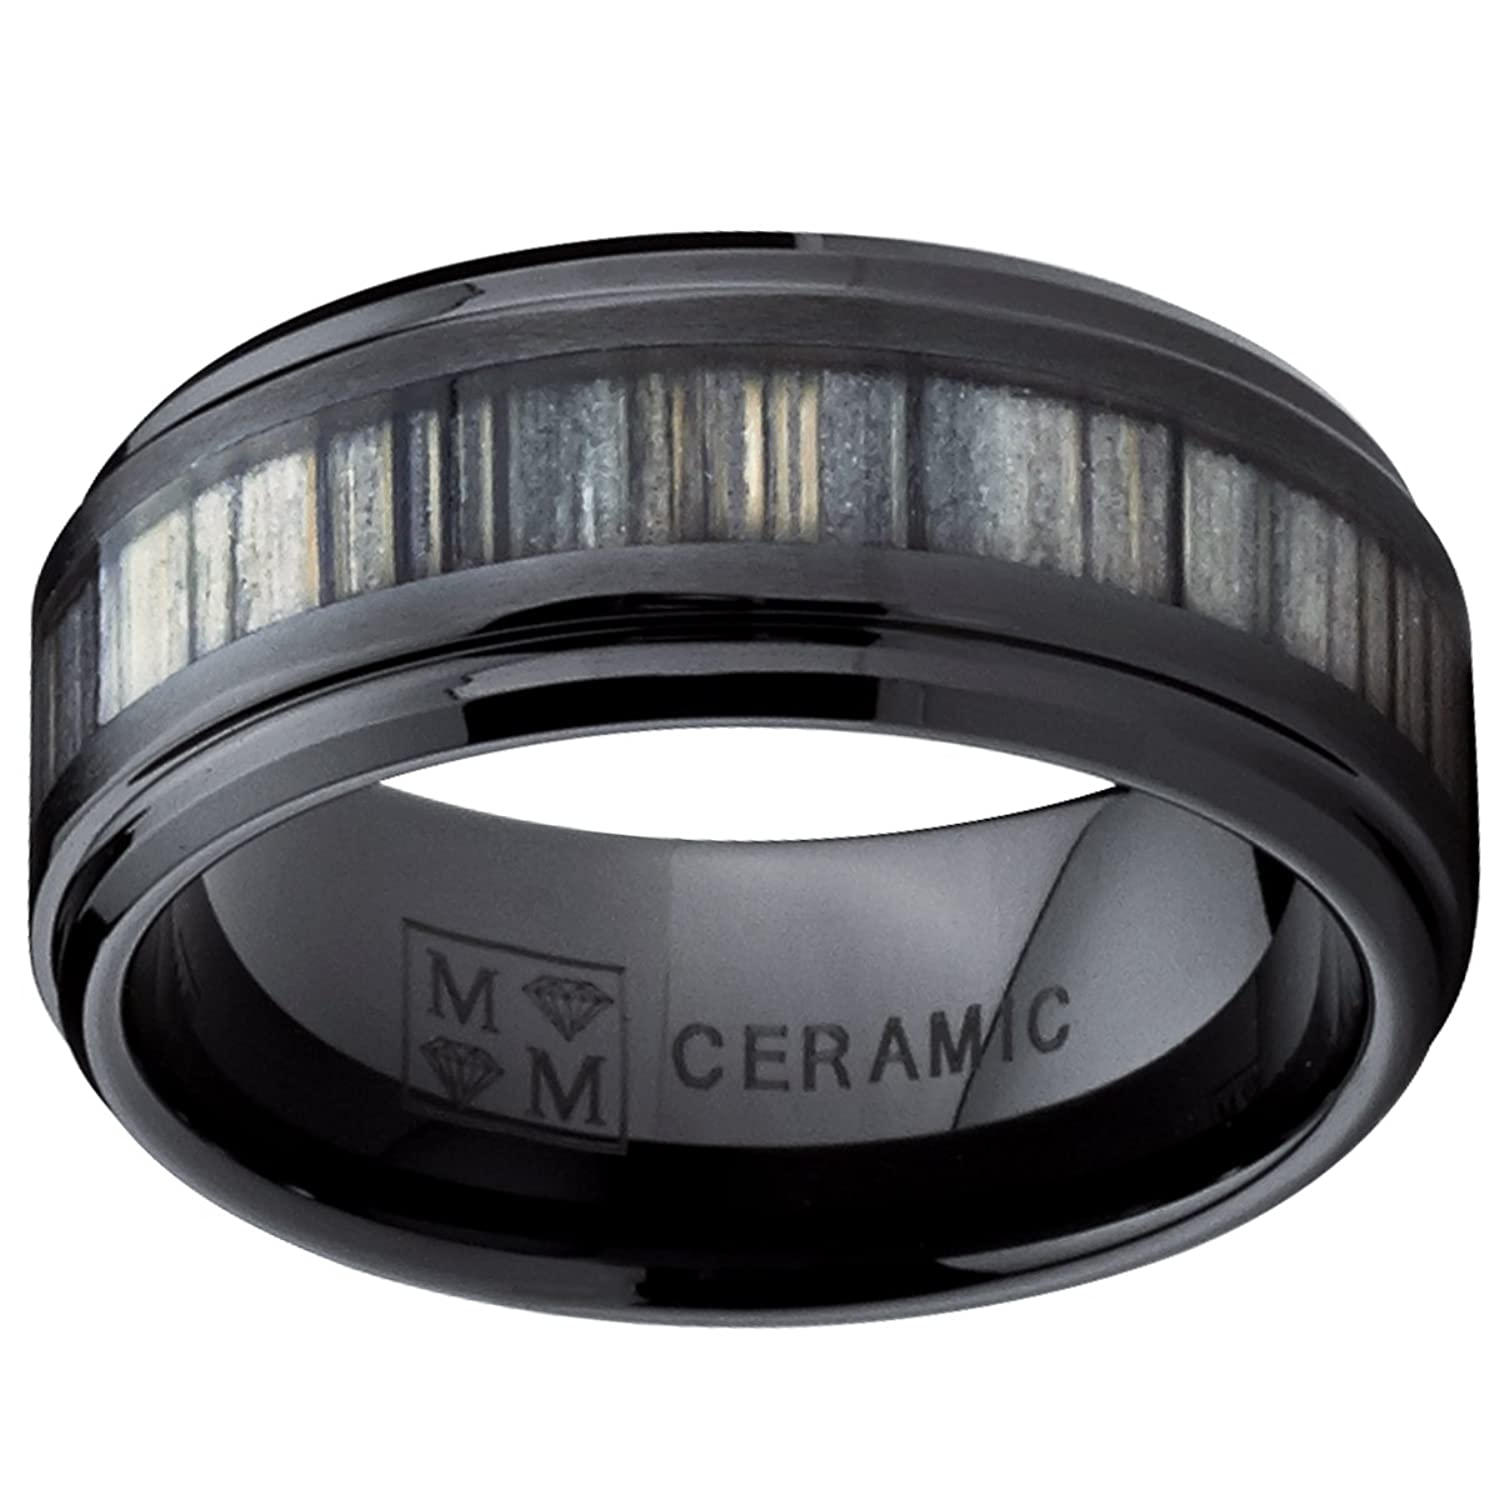 Black Ceramic Wedding Band Ring with Real Zebra Wood Inlay, 9MM ...